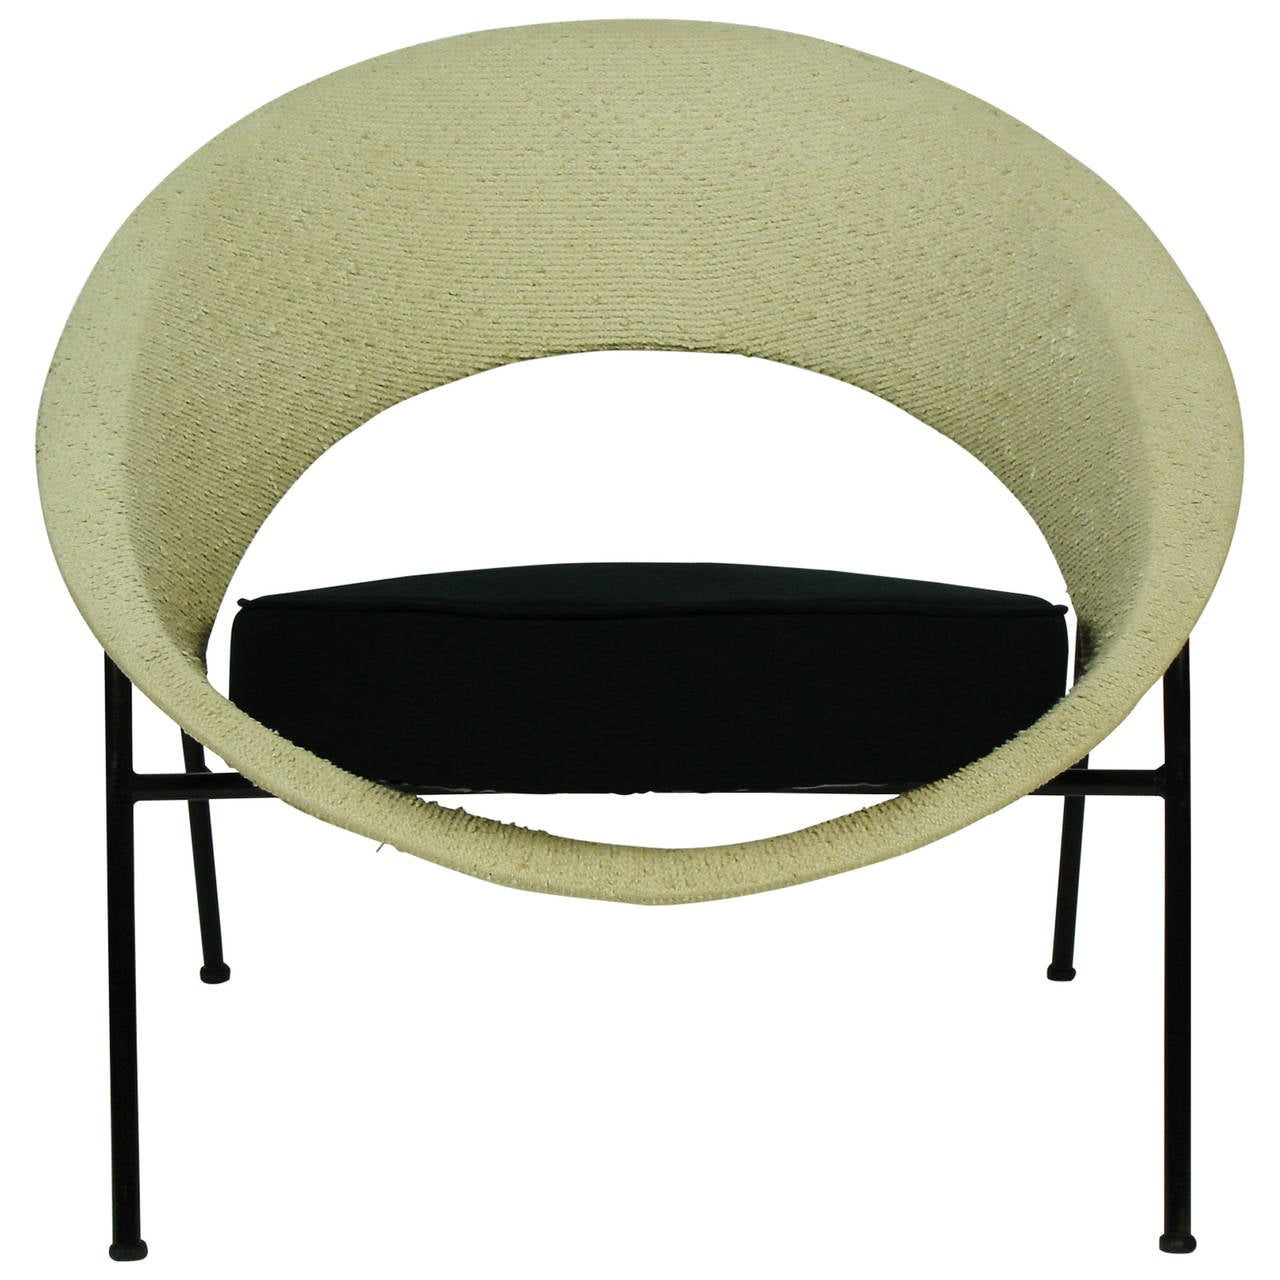 Quot Saturne Quot Armchair By Genevi 232 Ve Dangles And Christian